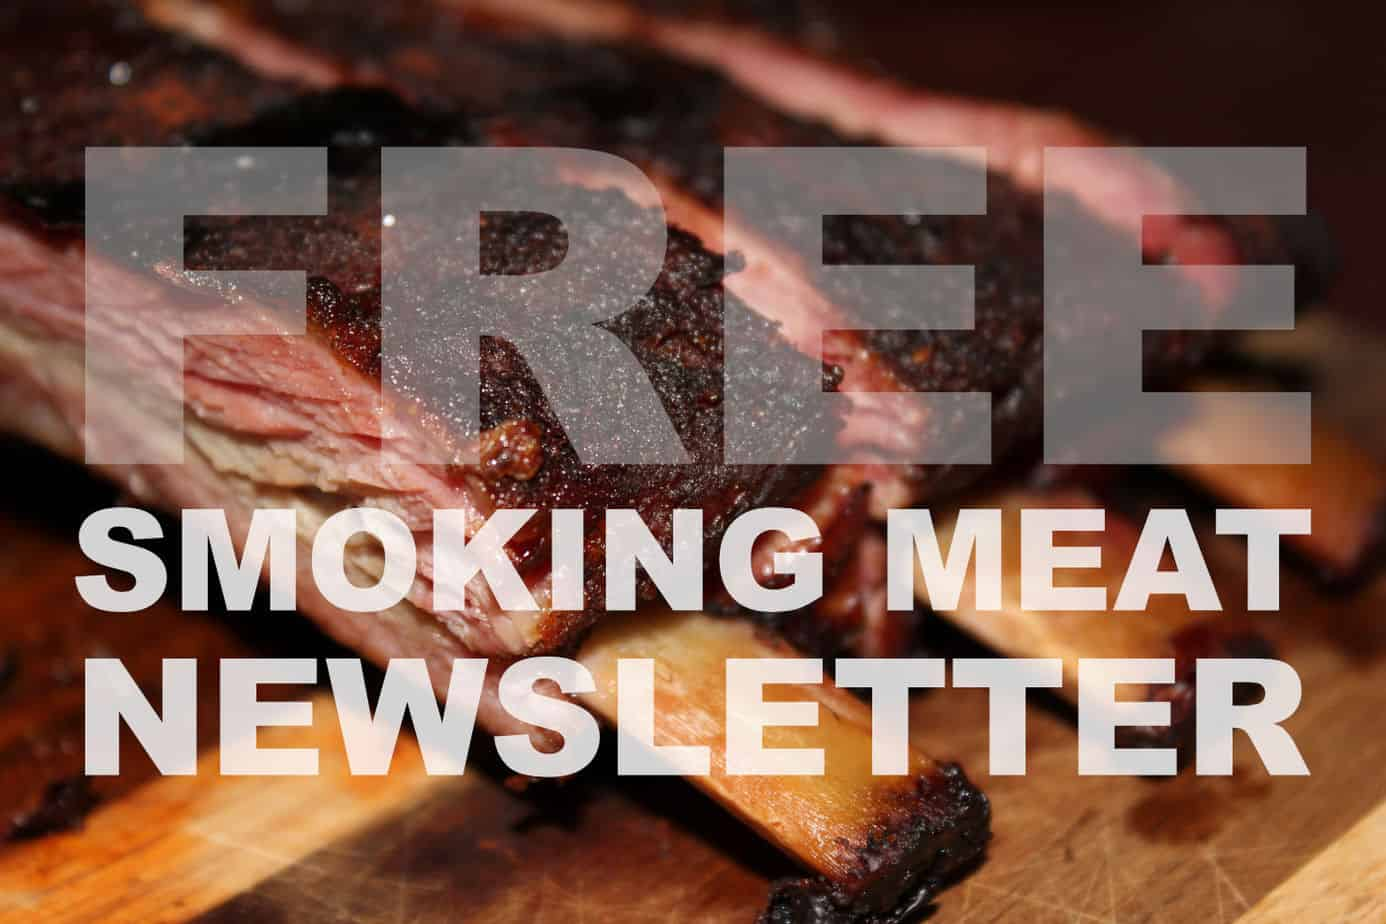 smoking meat newsletter featured